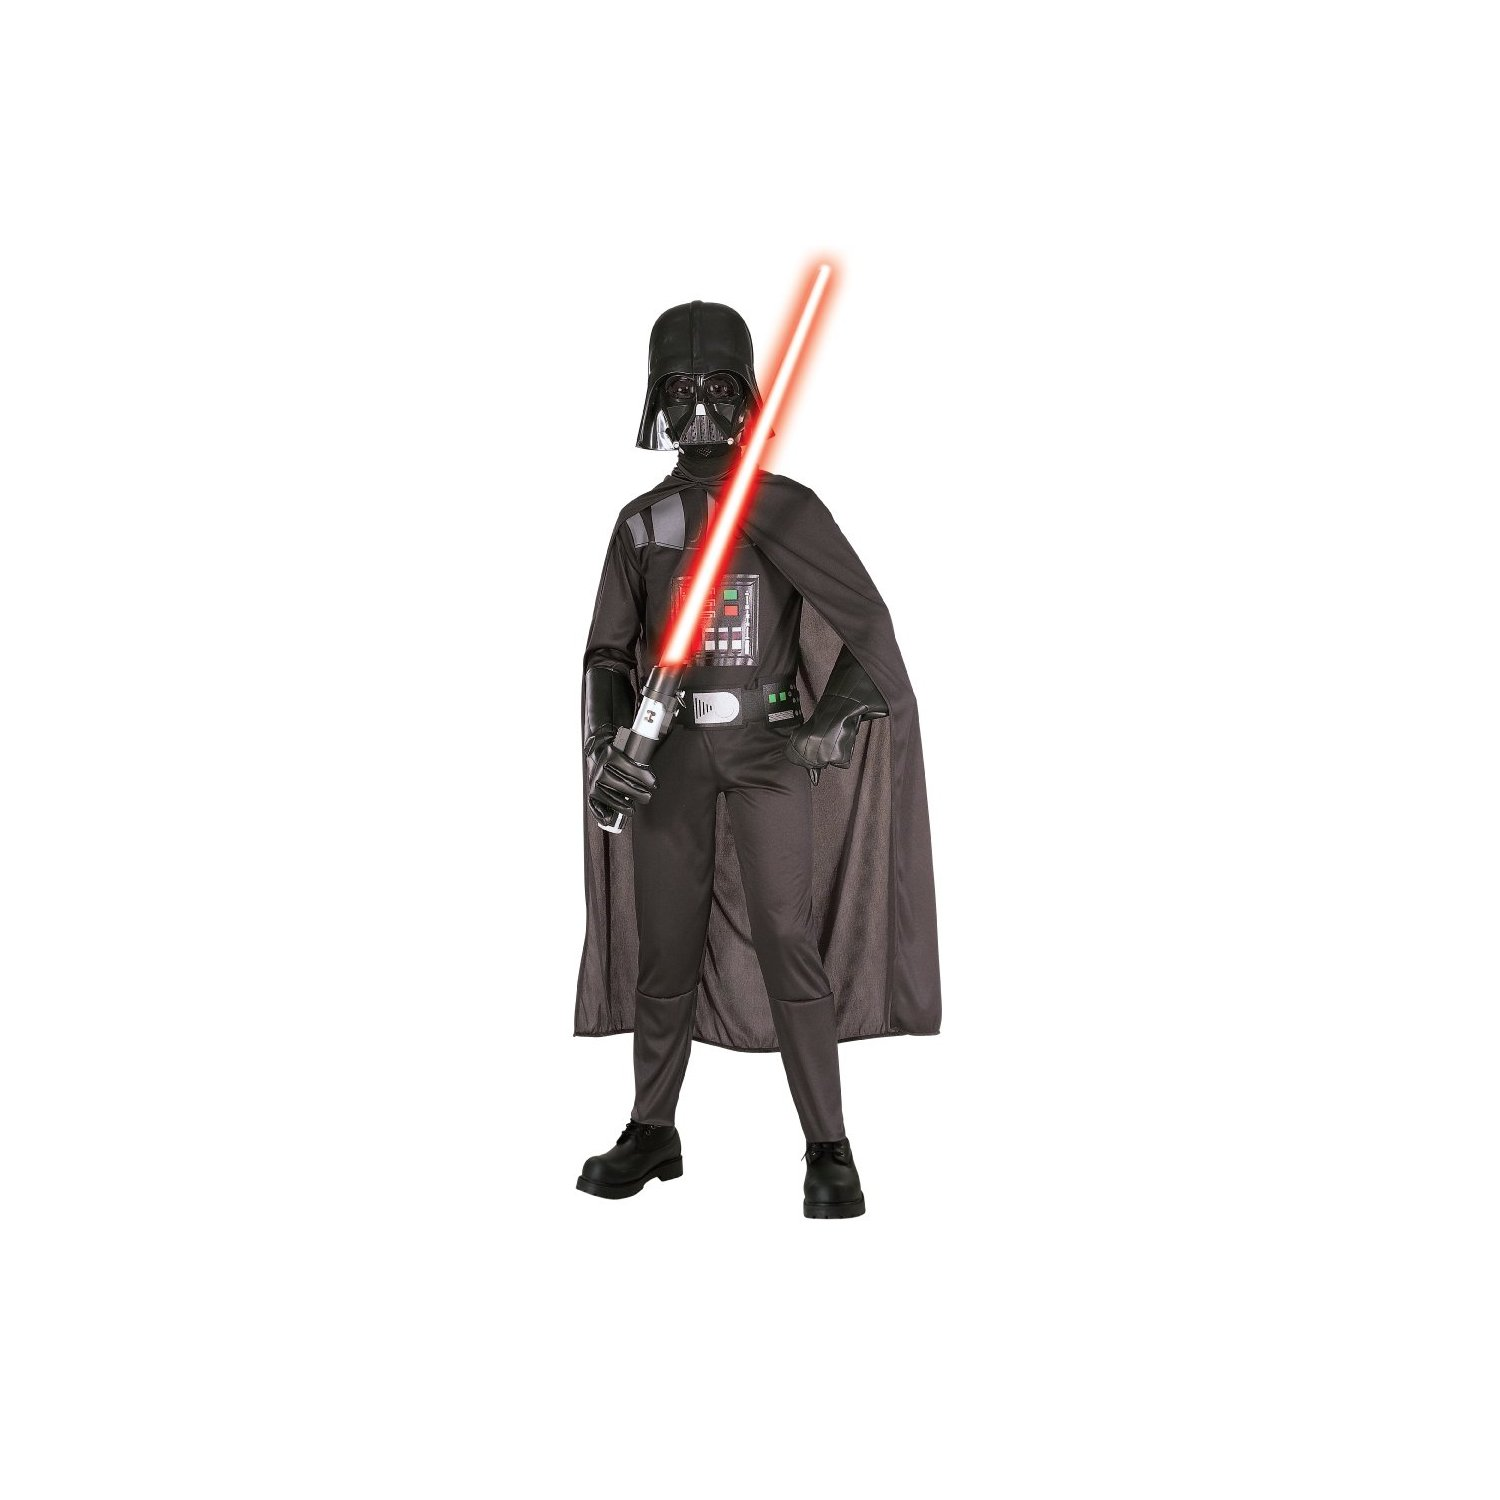 Star Wars -Darth Vader costume 882009